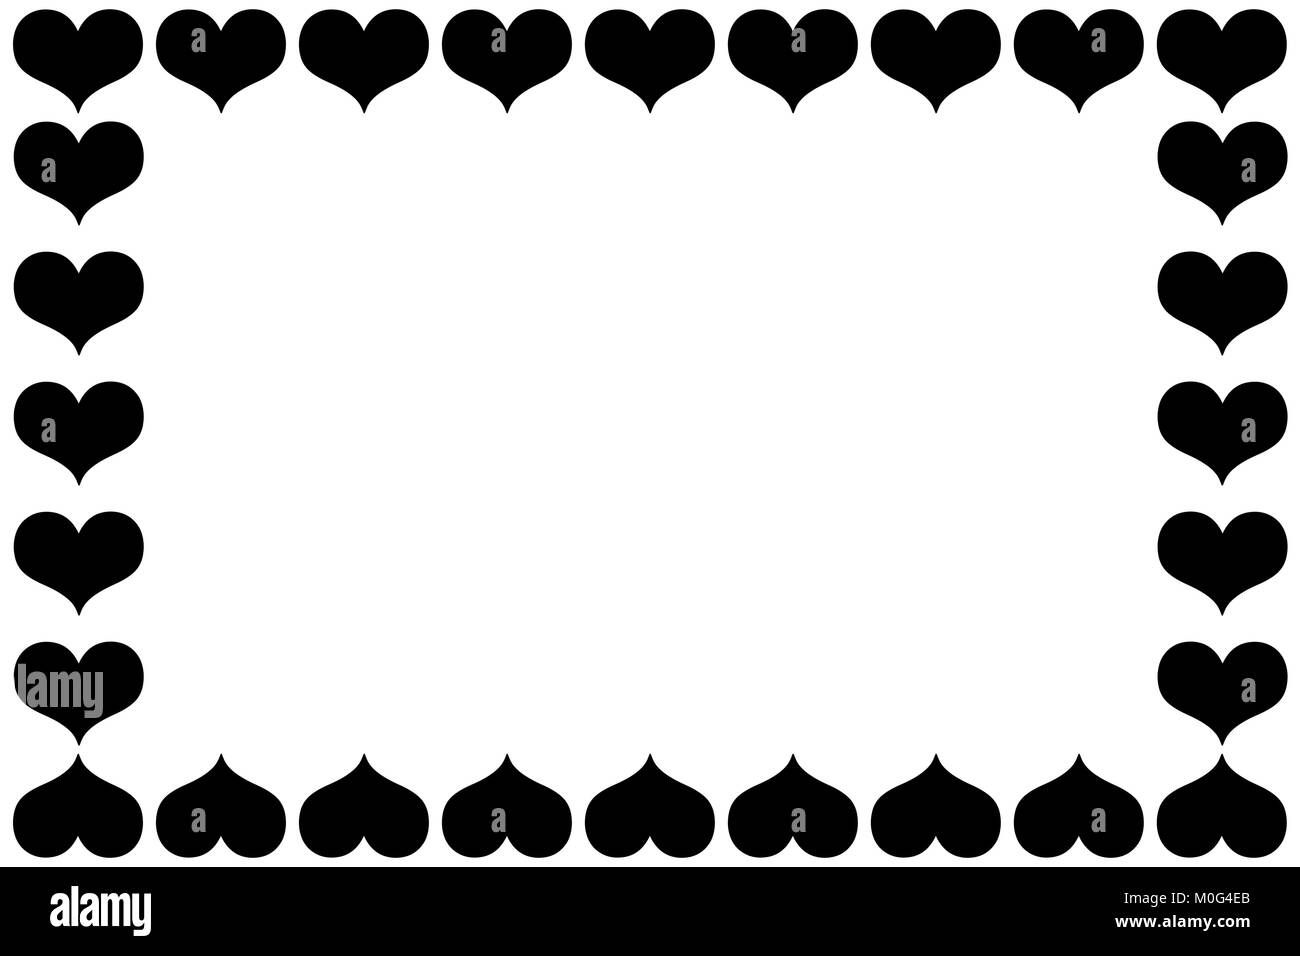 Heart frames - vector pattern - black pattern on a white background ...